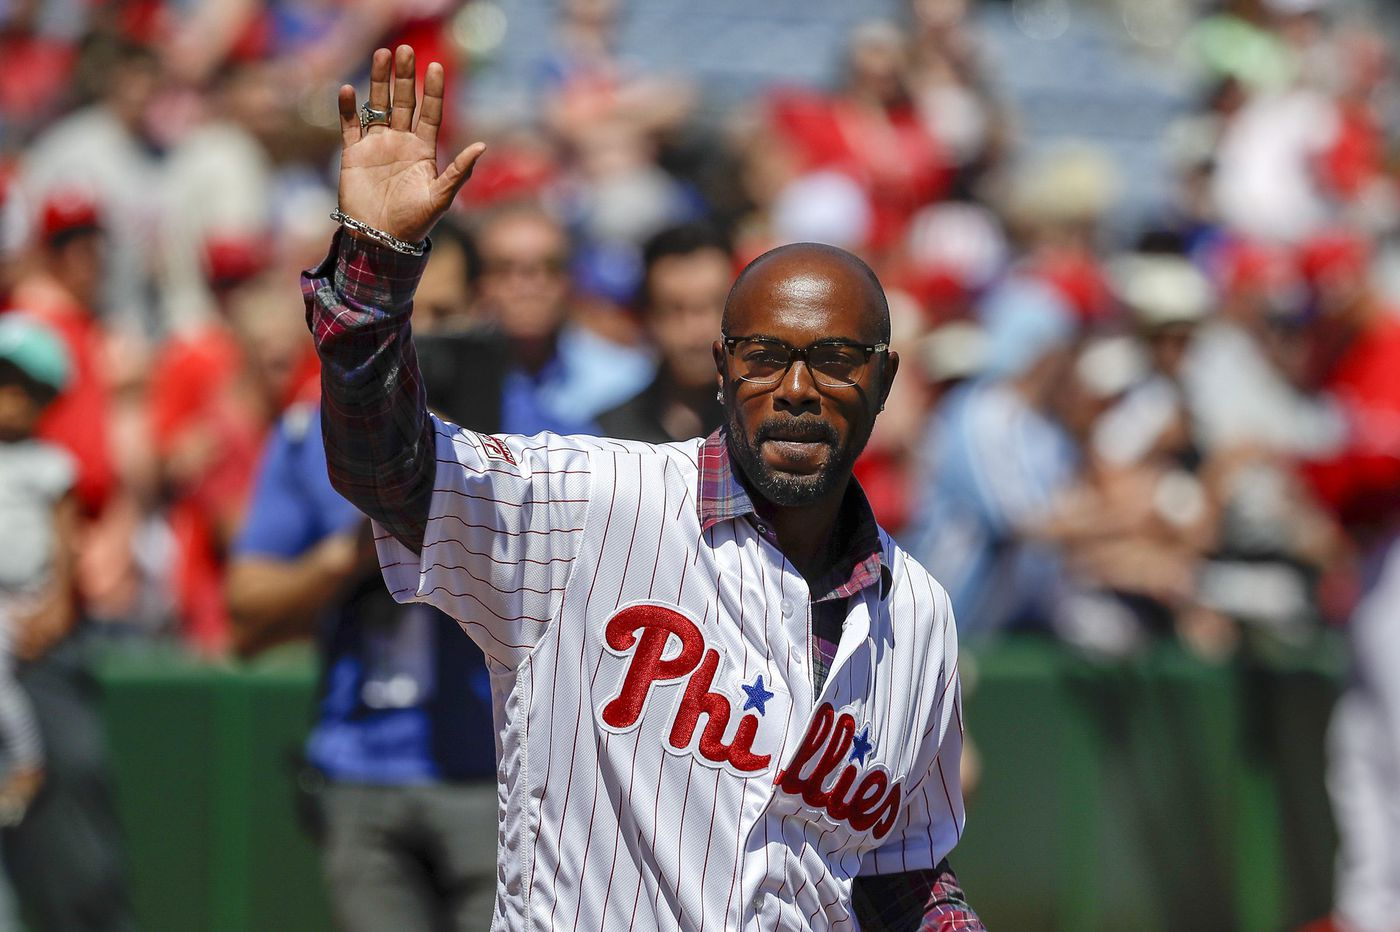 Jimmy Rollins drops in on Phillies, imparts winning mentality